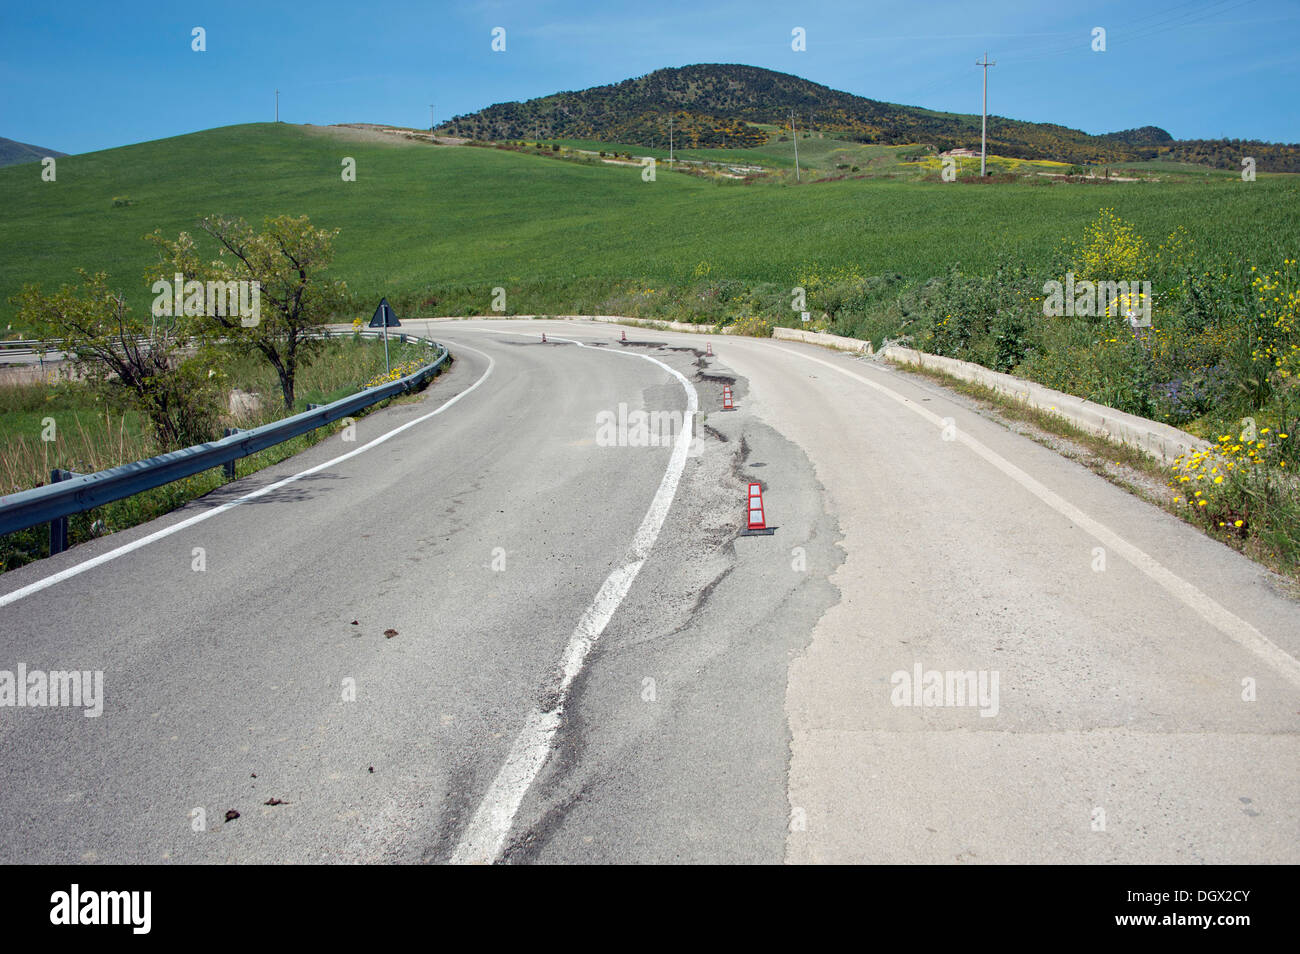 Road damaged by volcanic activity, Cerda, Sicily, Italy, Europe - Stock Image